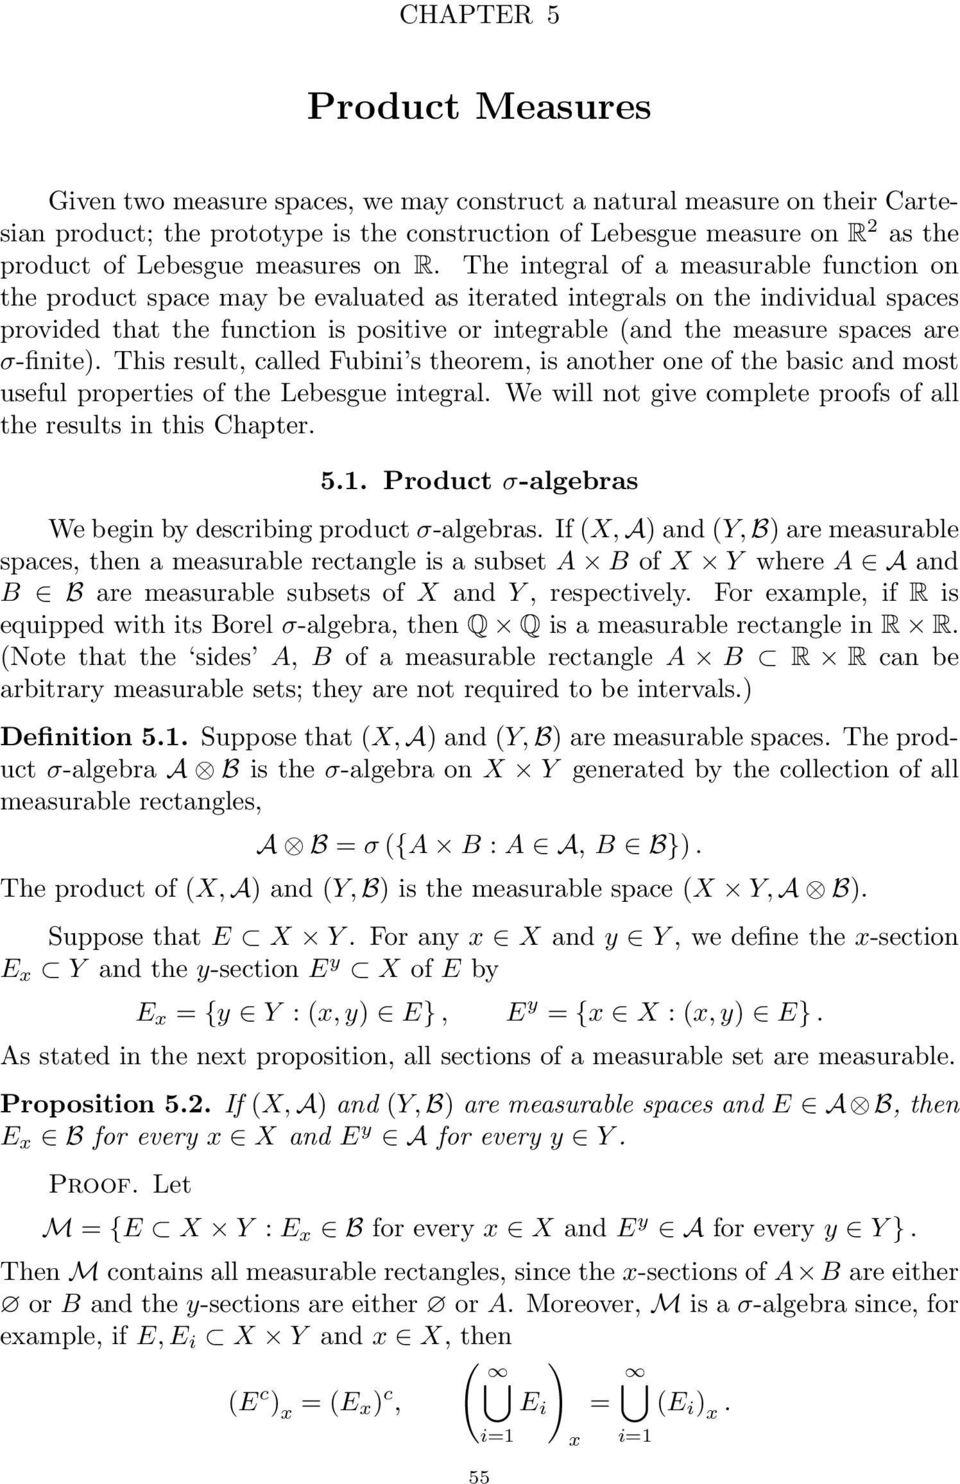 The integral of a measurable function on the product space may be evaluated as iterated integrals on the individual spaces provided that the function is positive or integrable (and the measure spaces